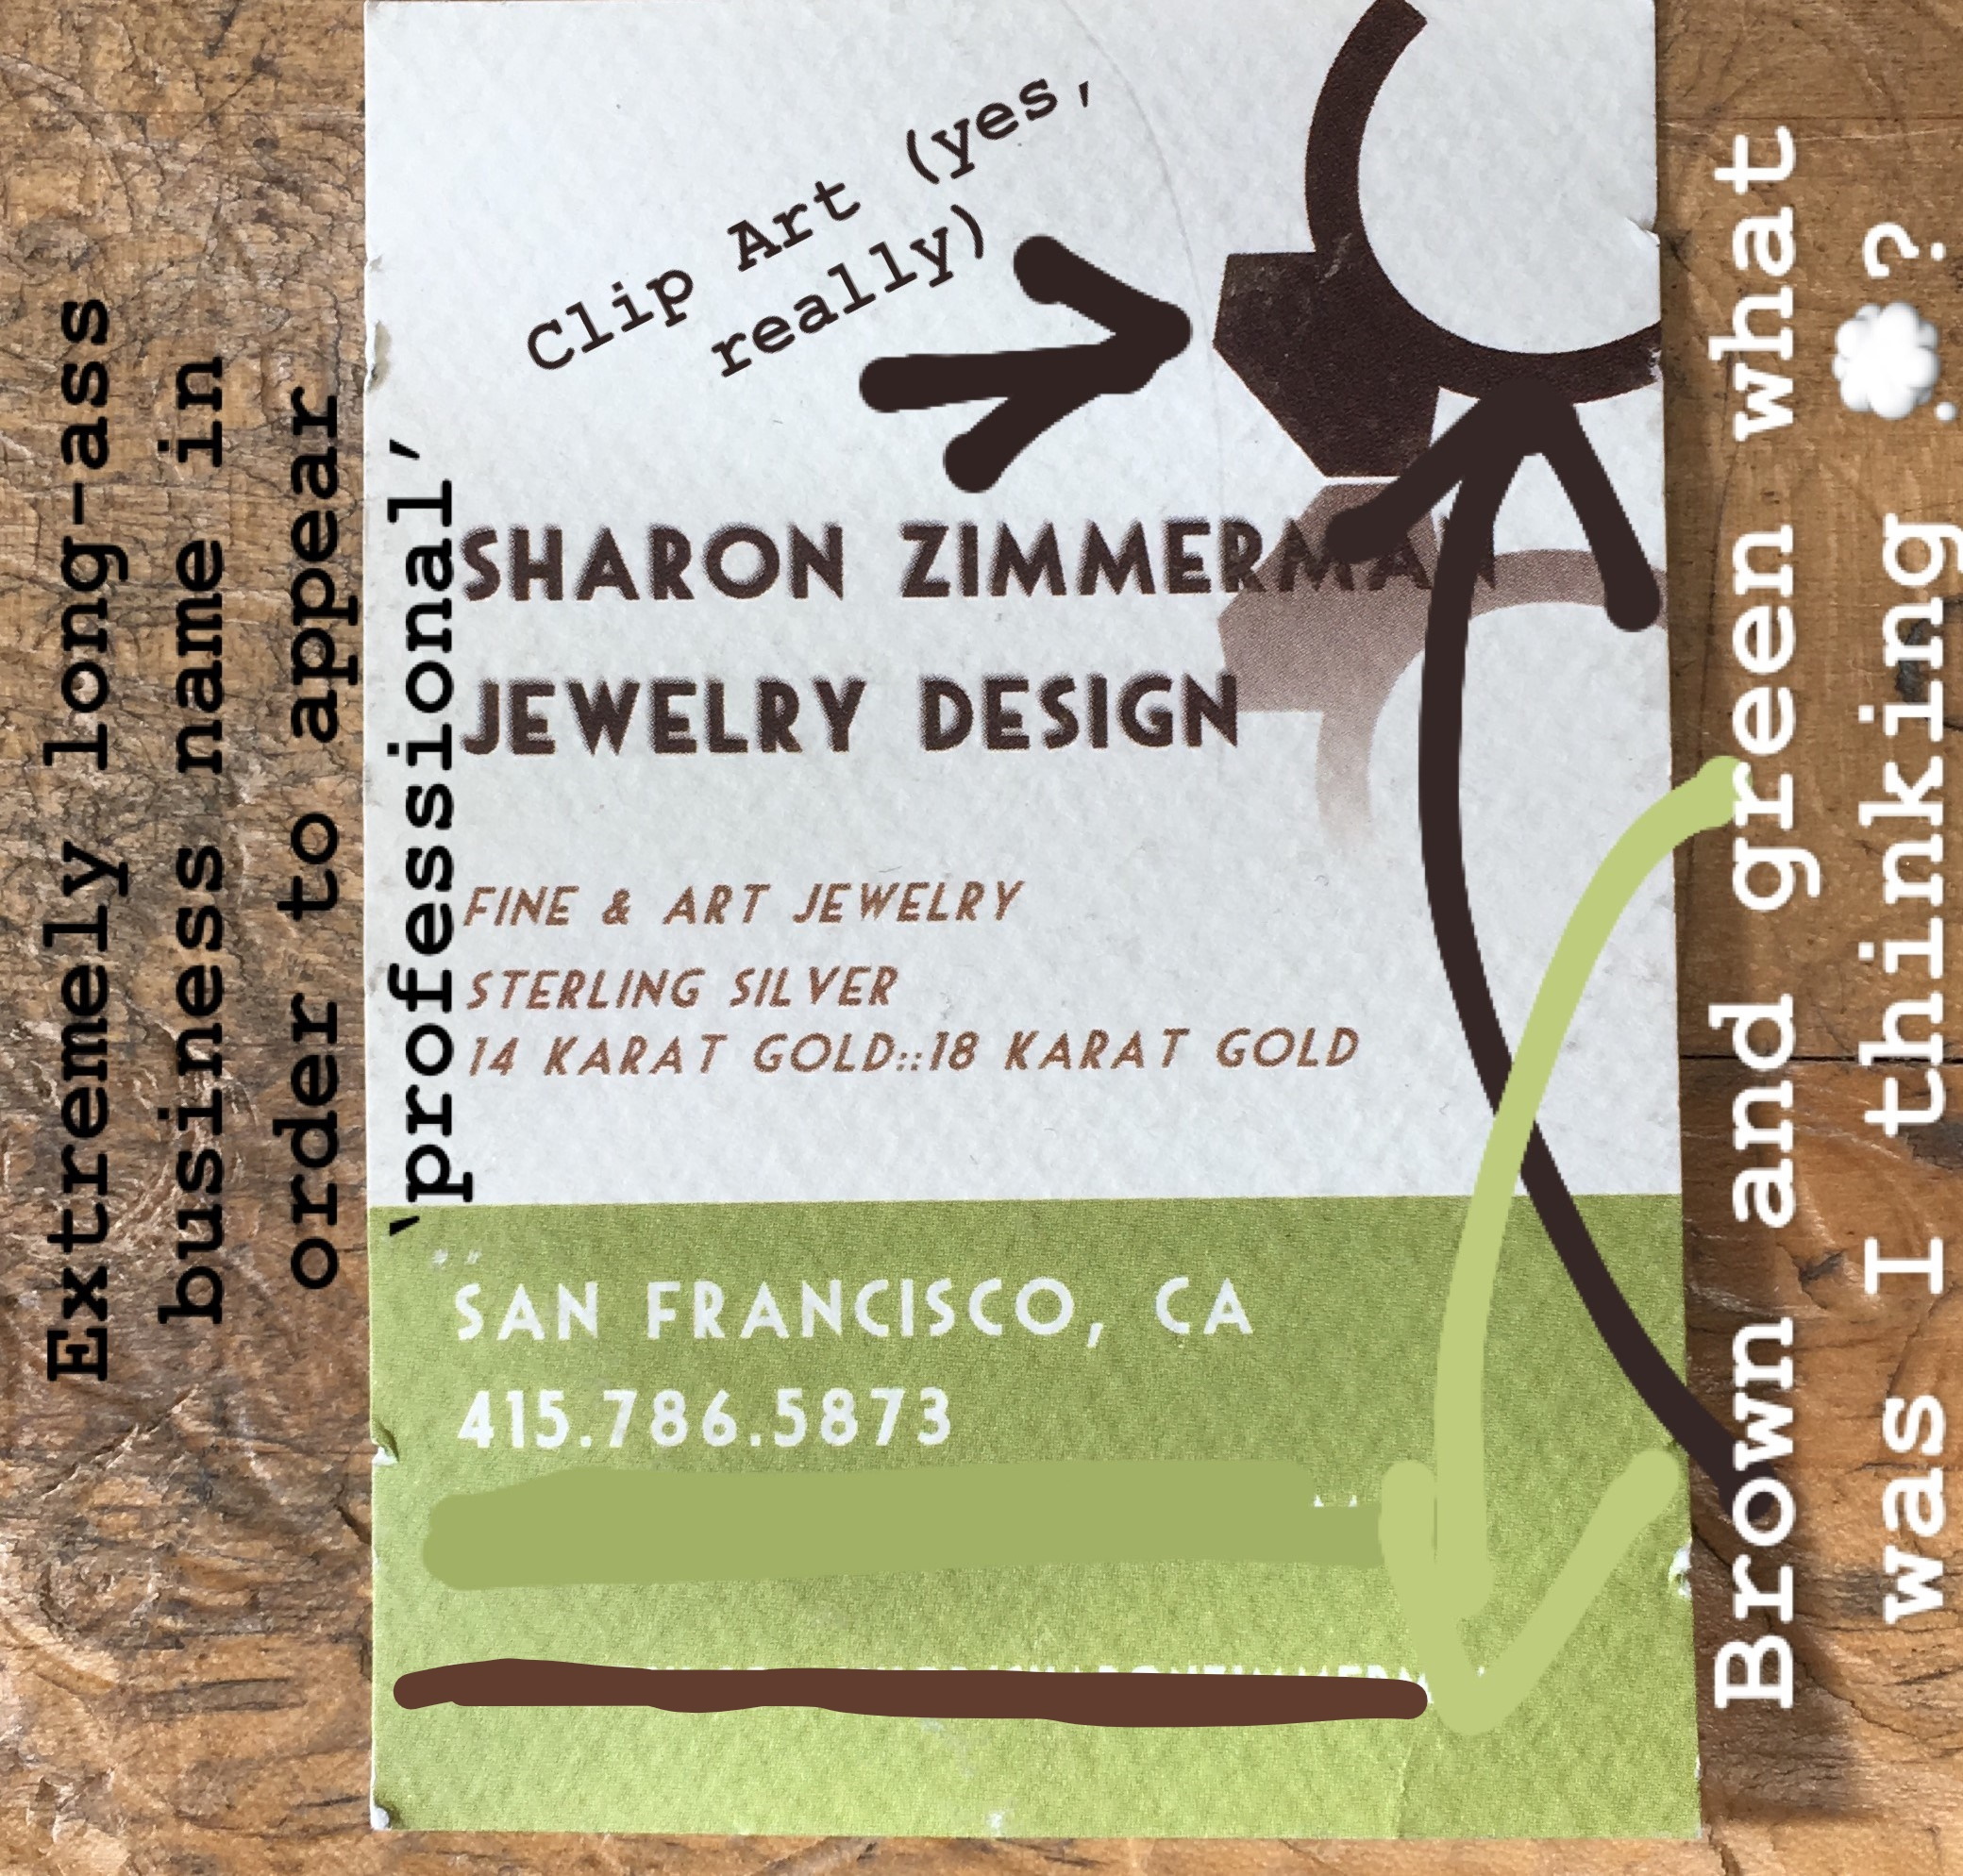 Old business cards with commentary - SharonZJewelry.jpg